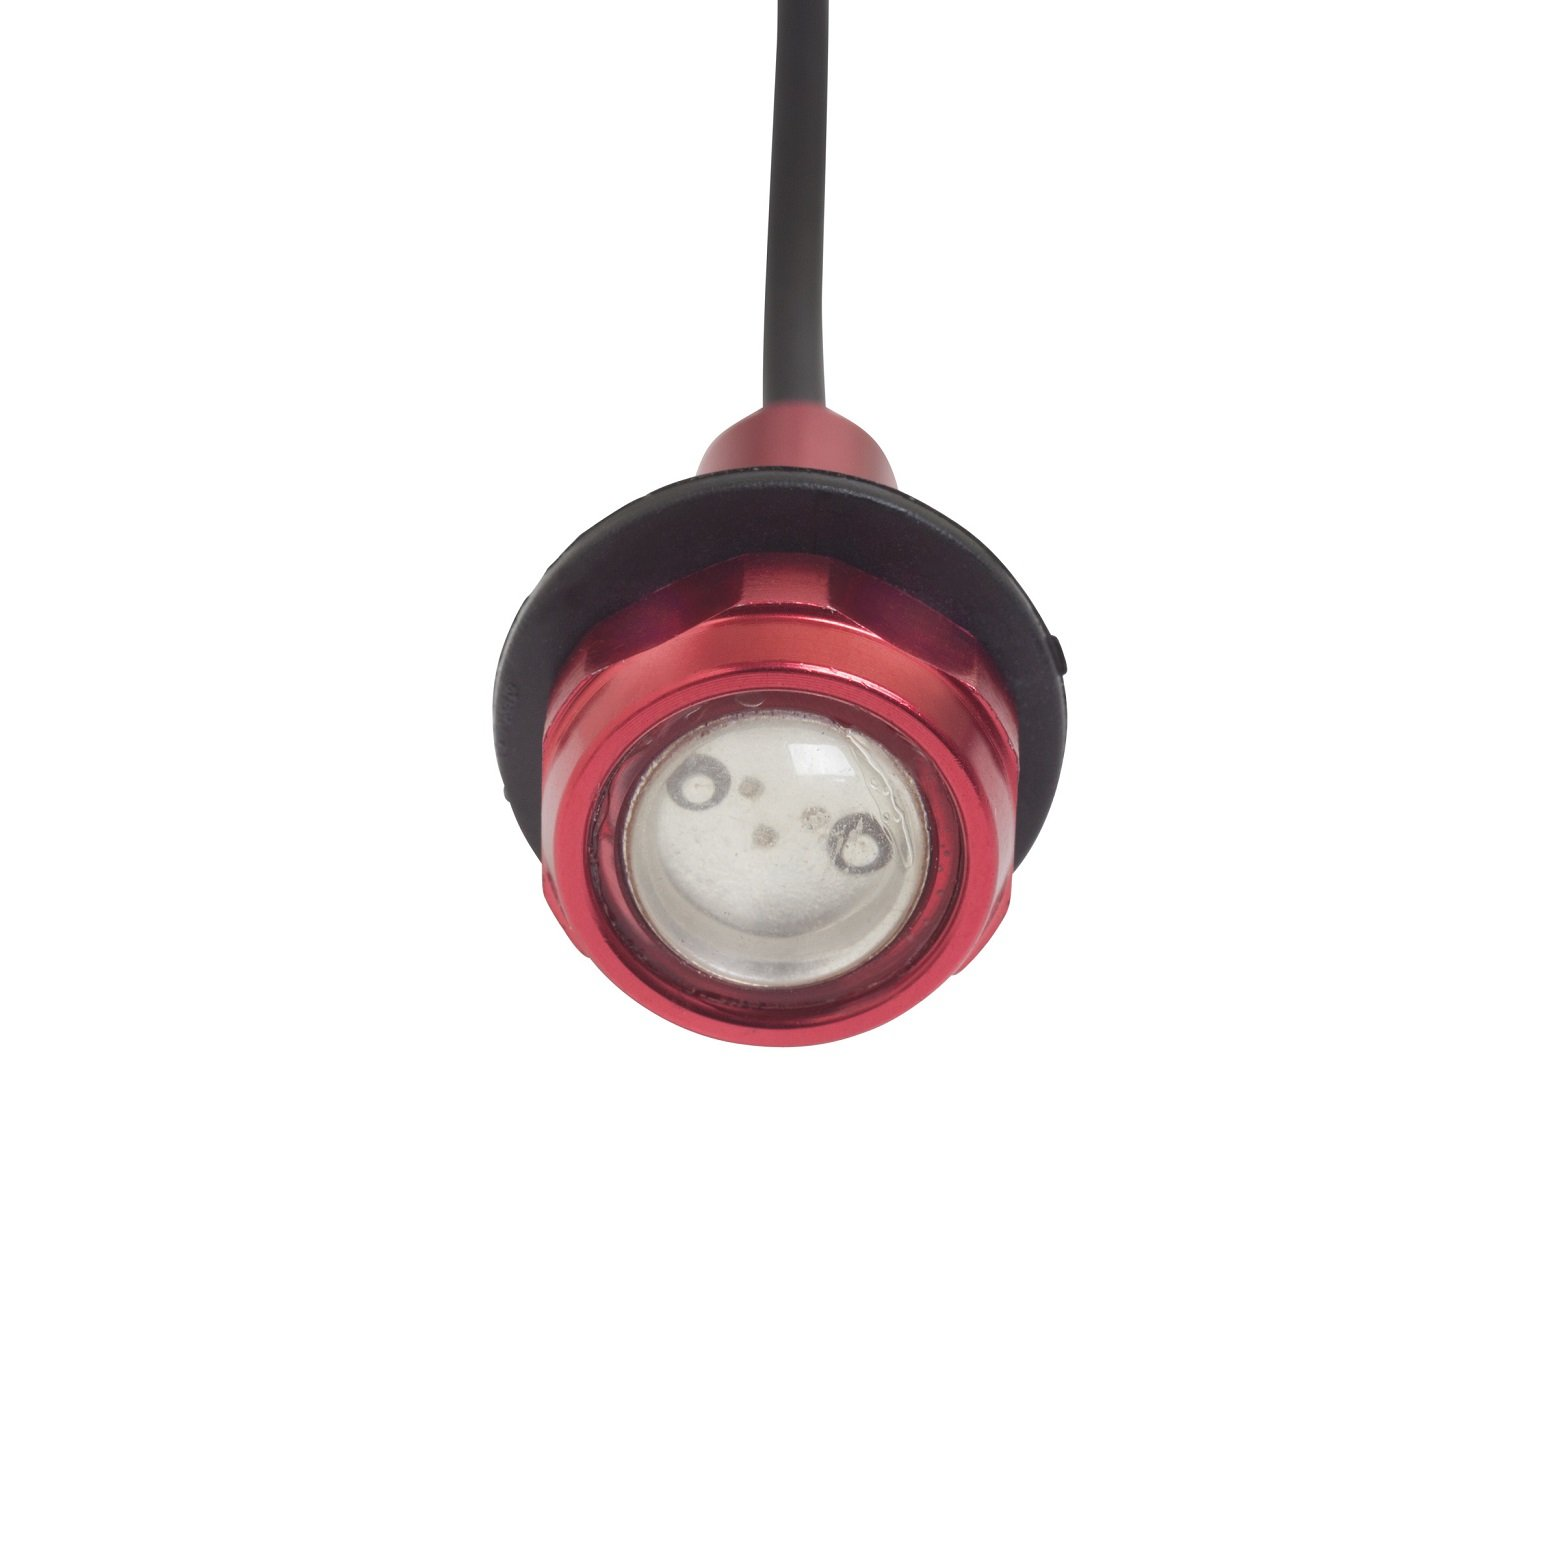 Yak-Power Super Bright LED Button Light Kit Red (2pcs) by Yak-Power